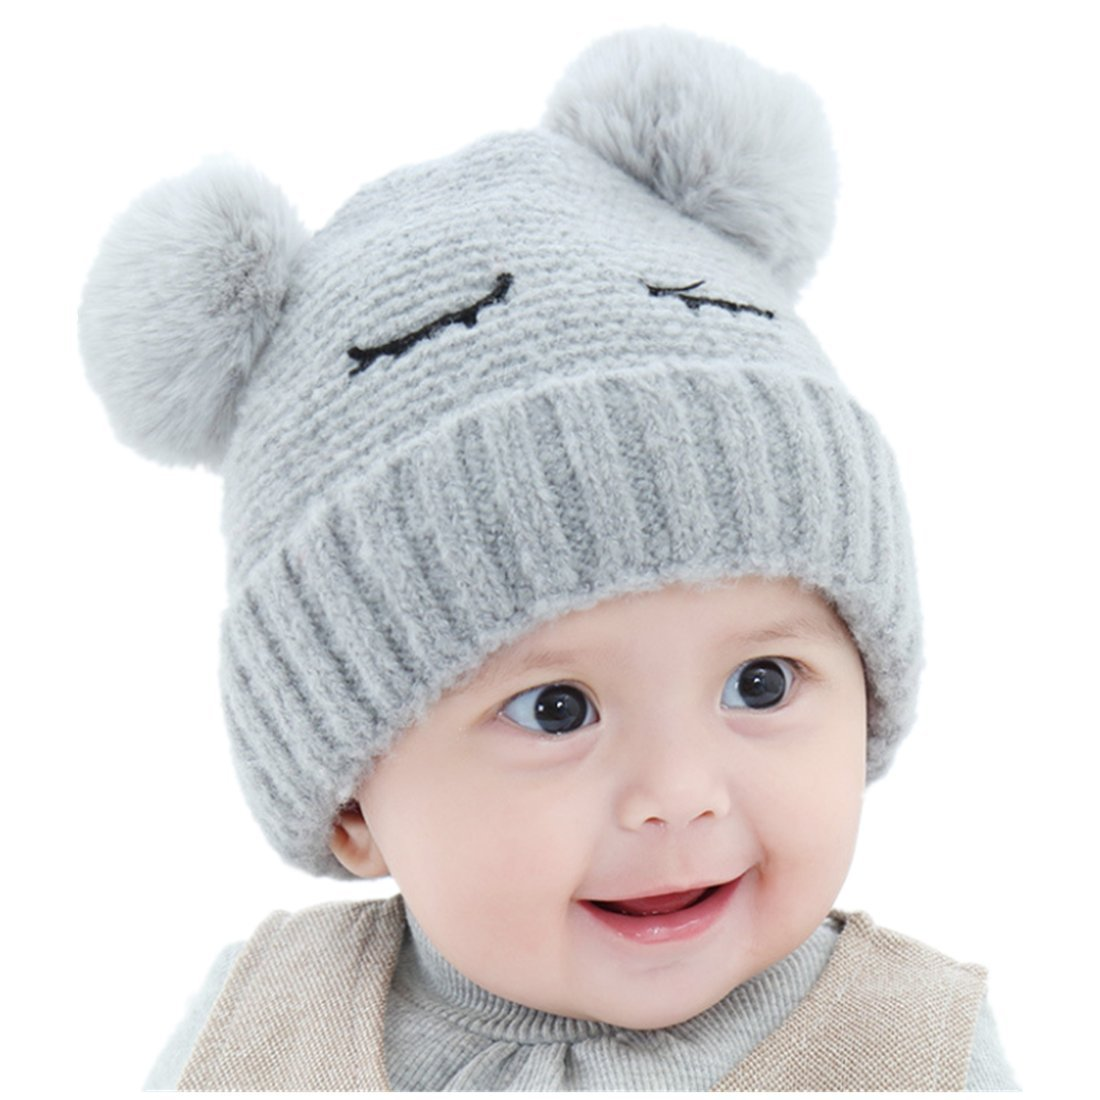 a3170d9187d Amazon.com  zerowin Baby Boys Girls Pompom Hat Props Crochet Knitted Double  Pom Pom Hat Bear Beanie Wool Hat Warm Toddler Hats (Grey)  Clothing